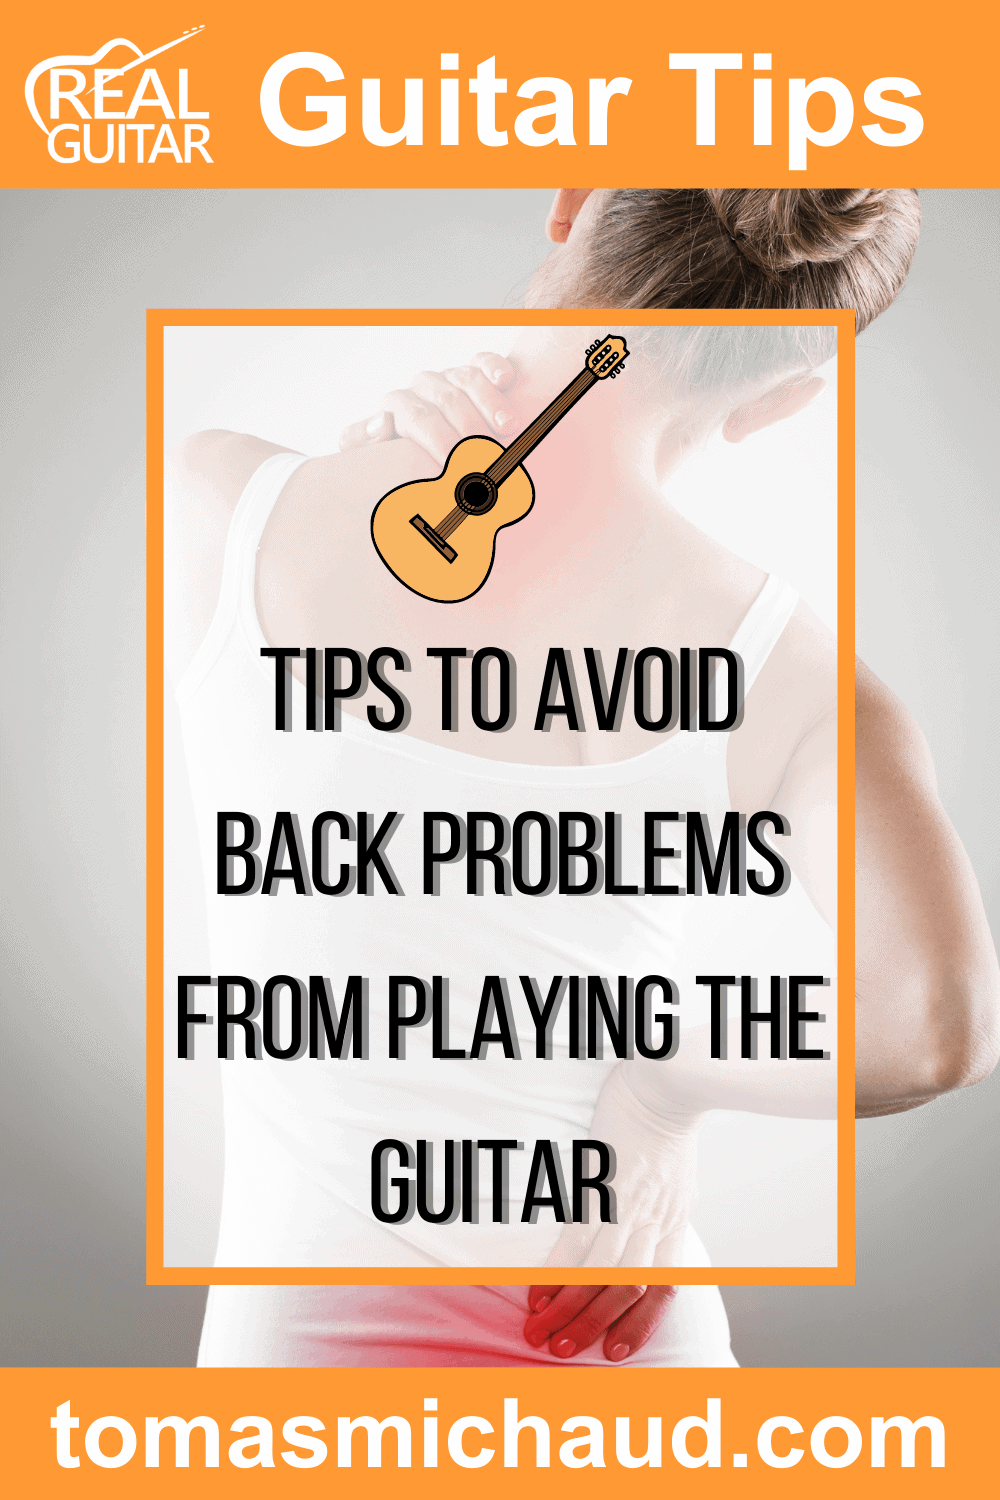 Tips to avoid back problems from playing the guitar